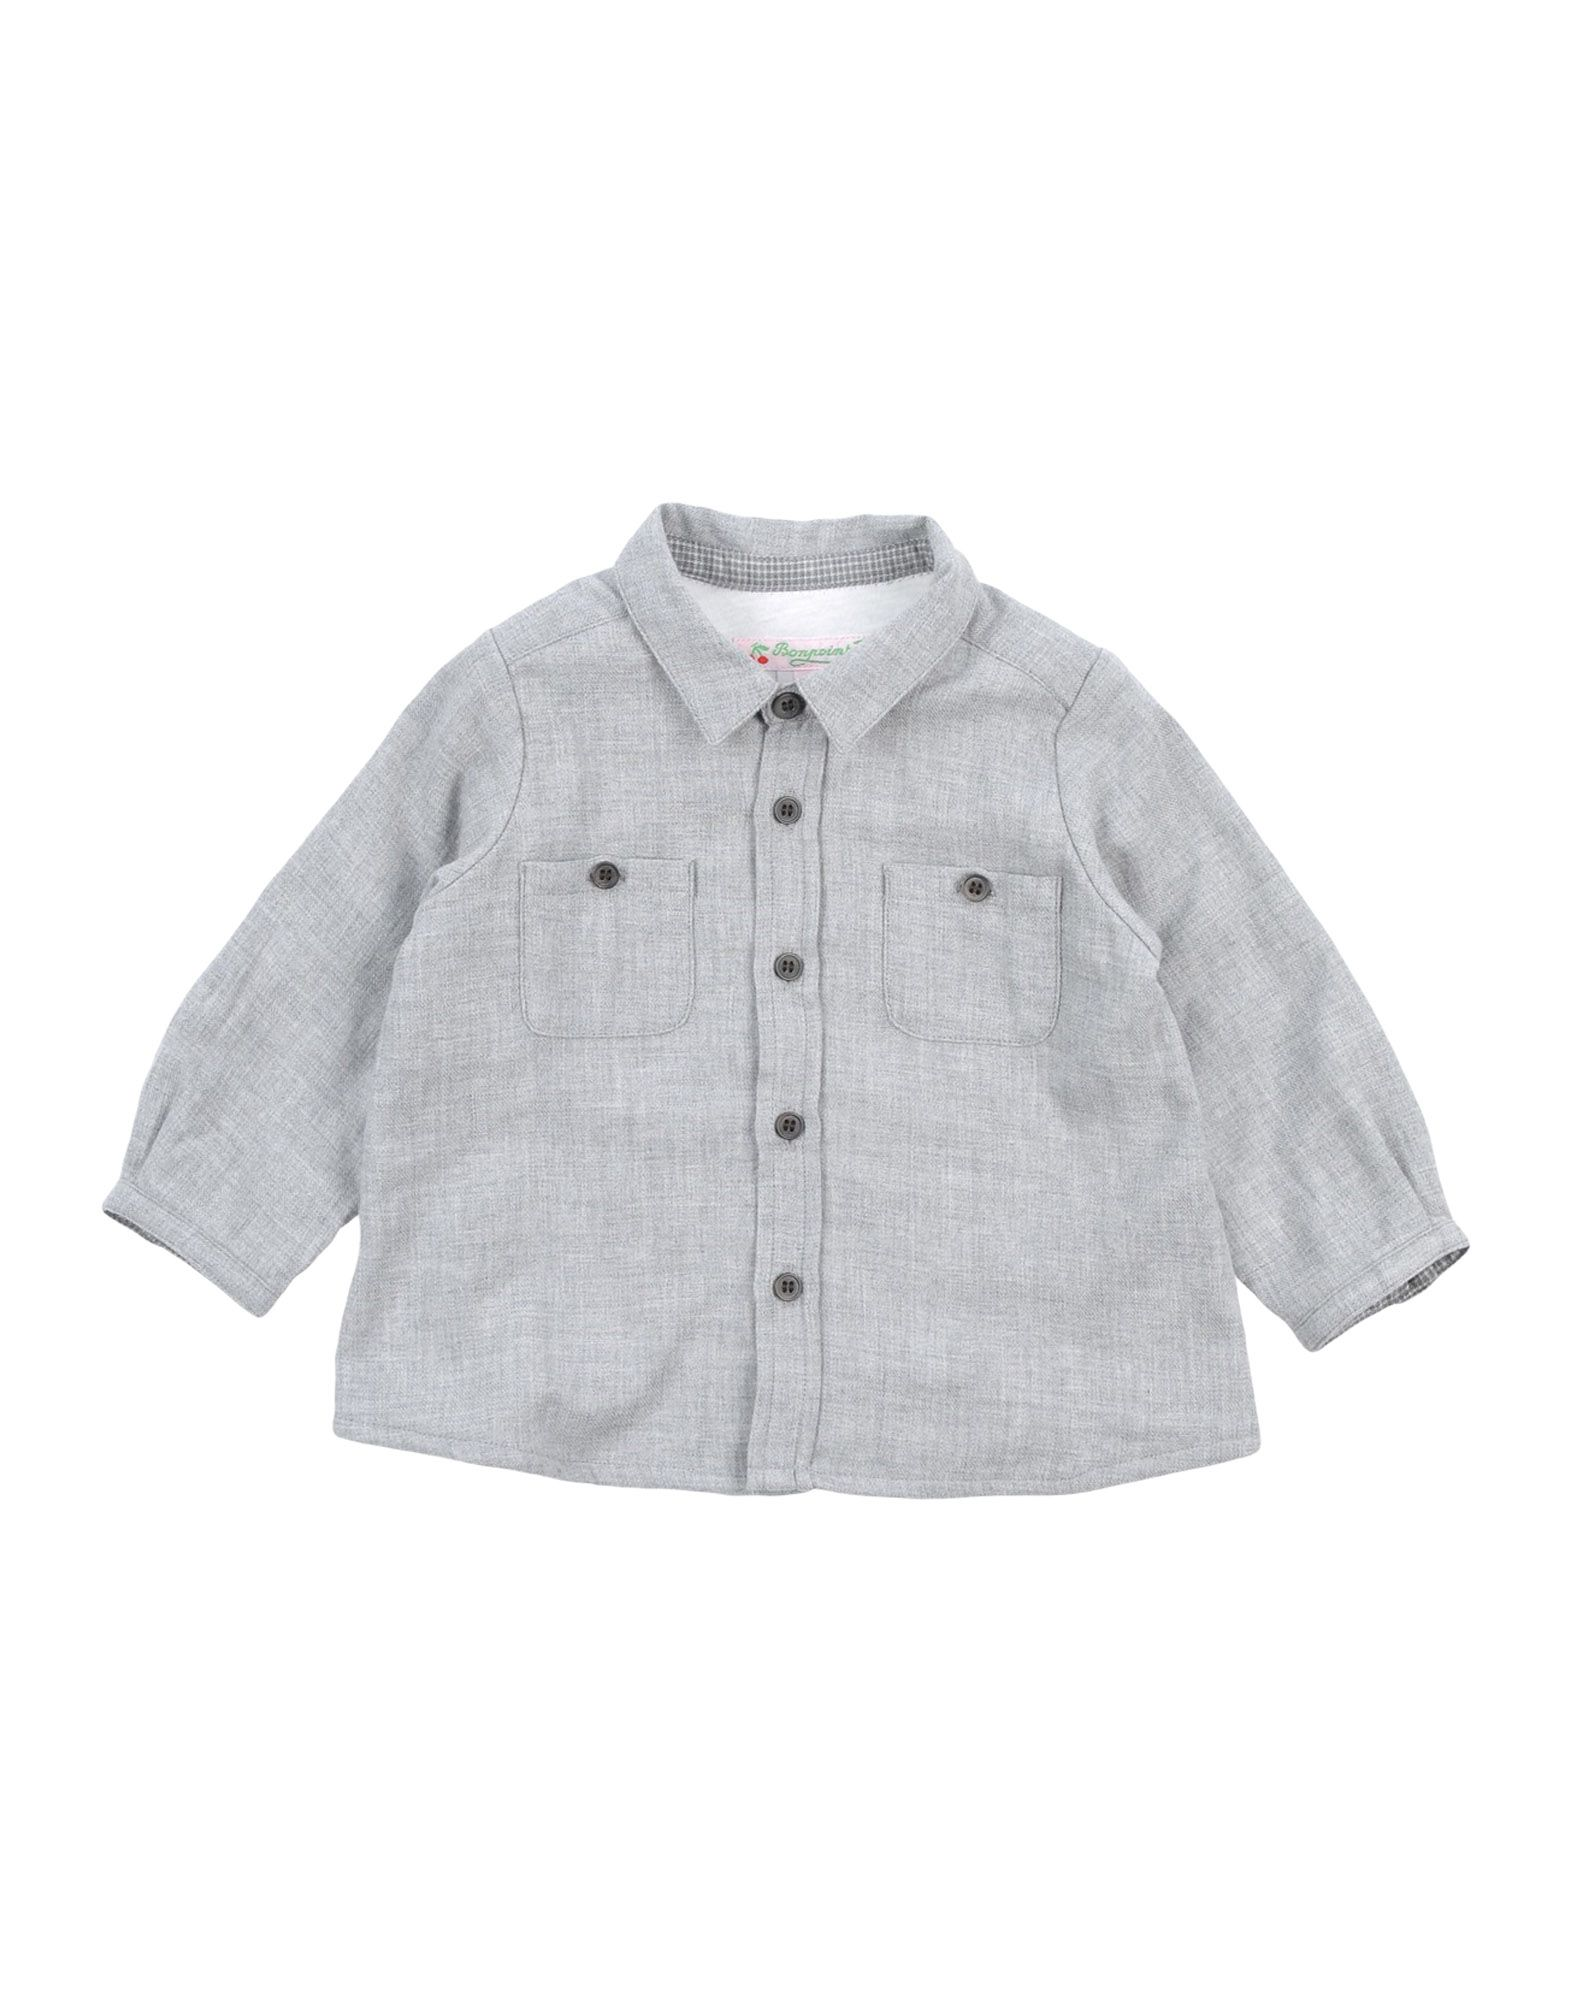 BONPOINT Solid Color Shirt in Grey